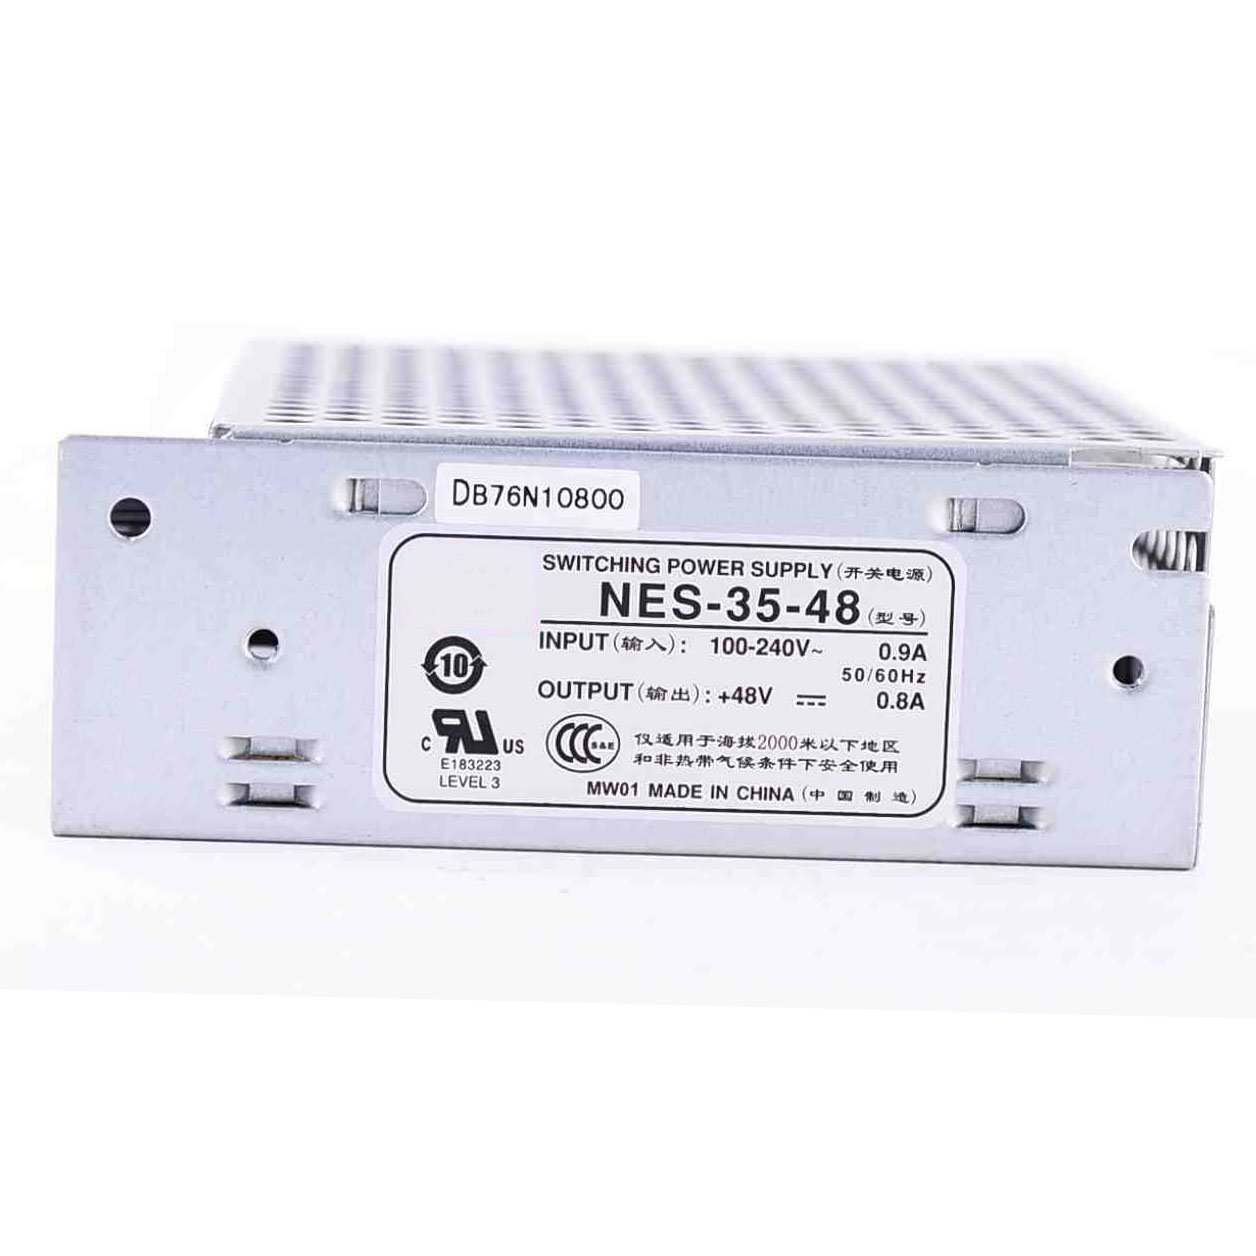 New Switch Power Supply 48V 1.1A 50W 129x98x38mm for Mean Well MW MeanWell NES-50-48